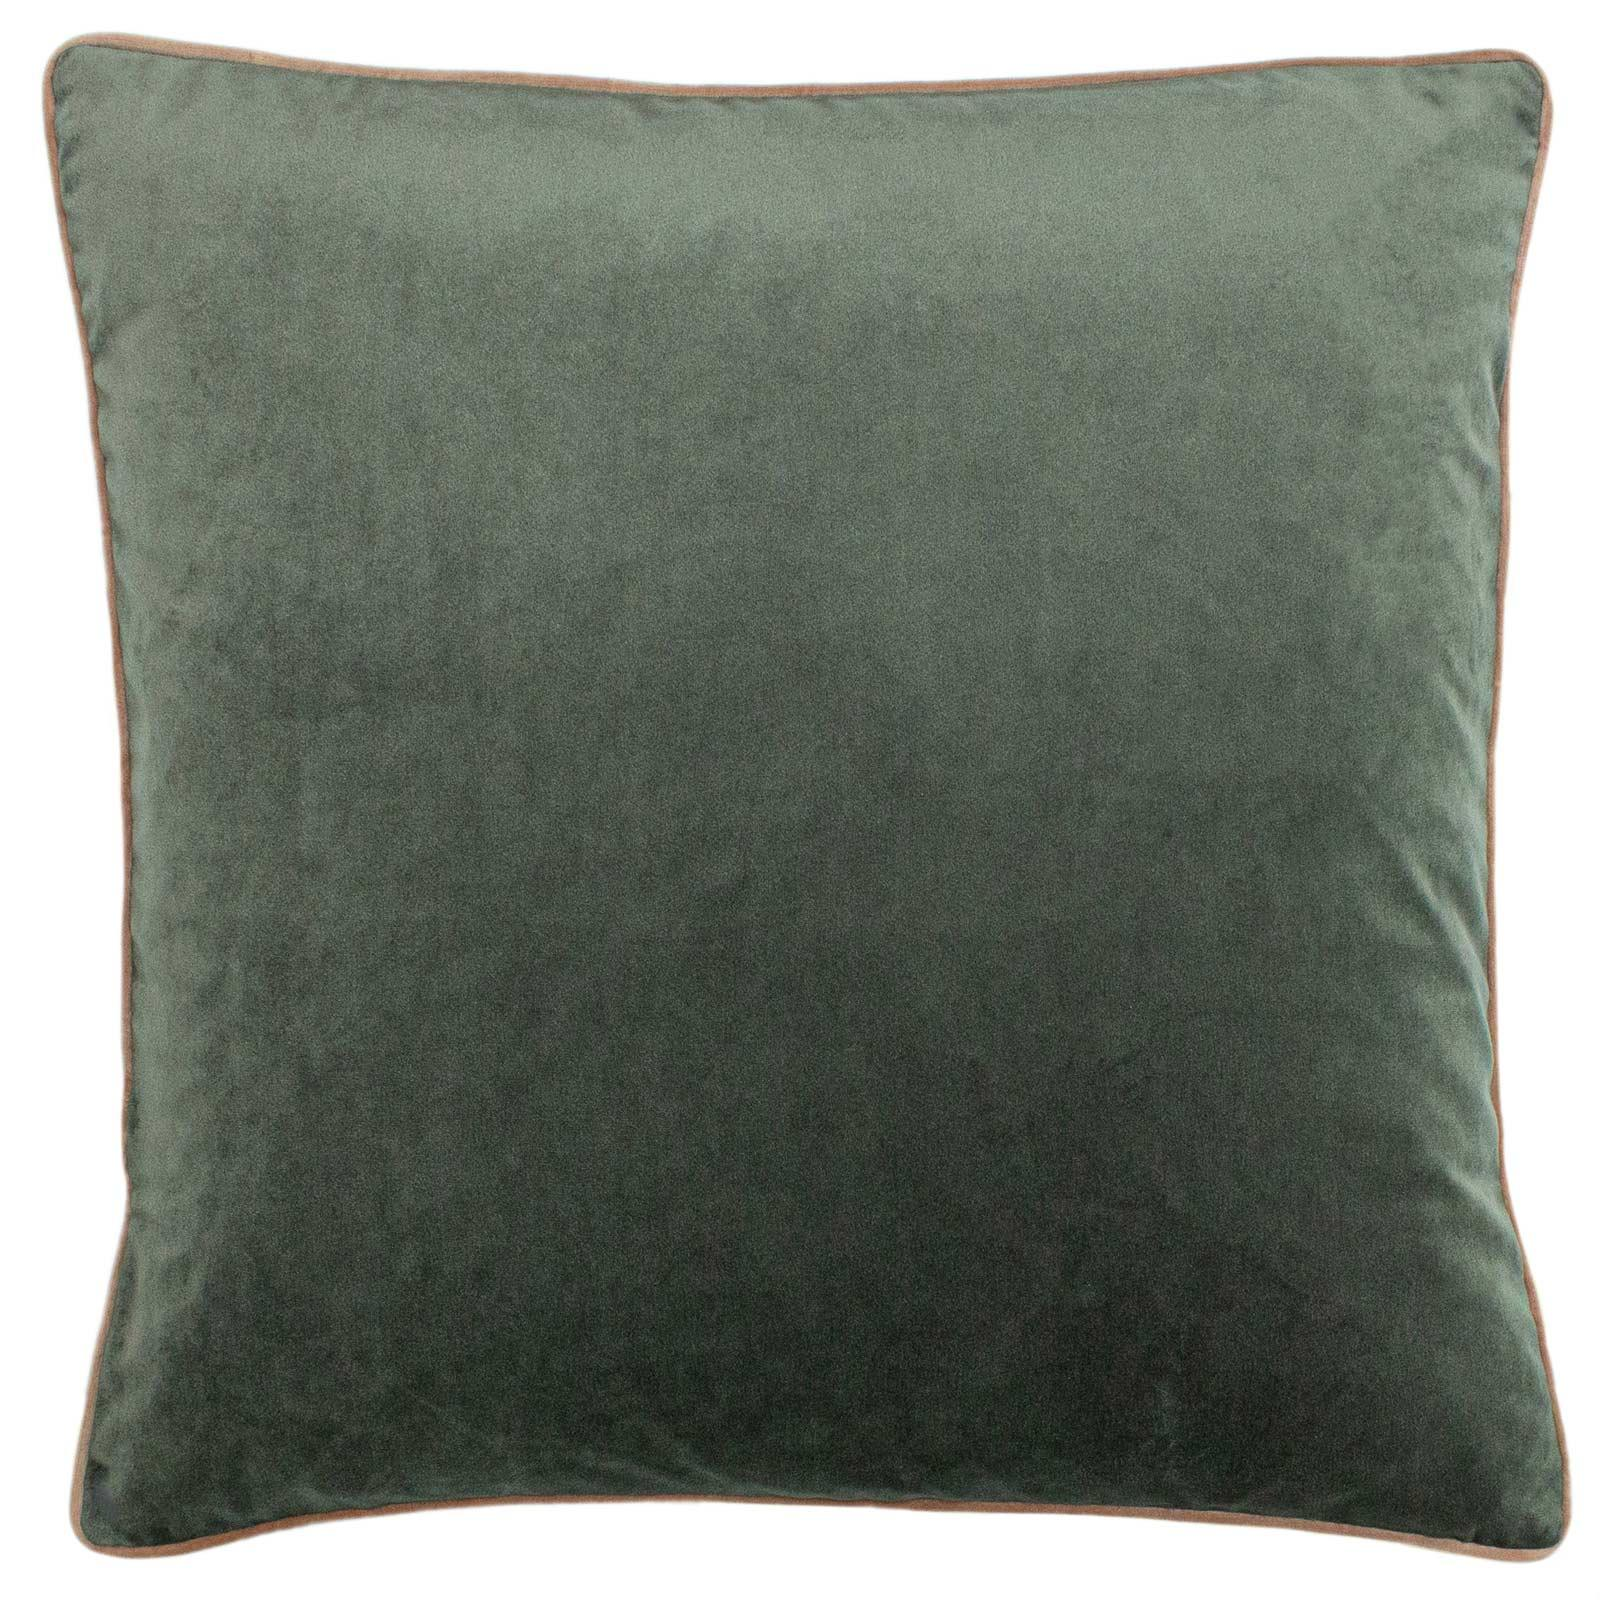 Gemini Velvet Double Piped Grey Filled Cushions 20'' x 20'' -  - Ideal Textiles